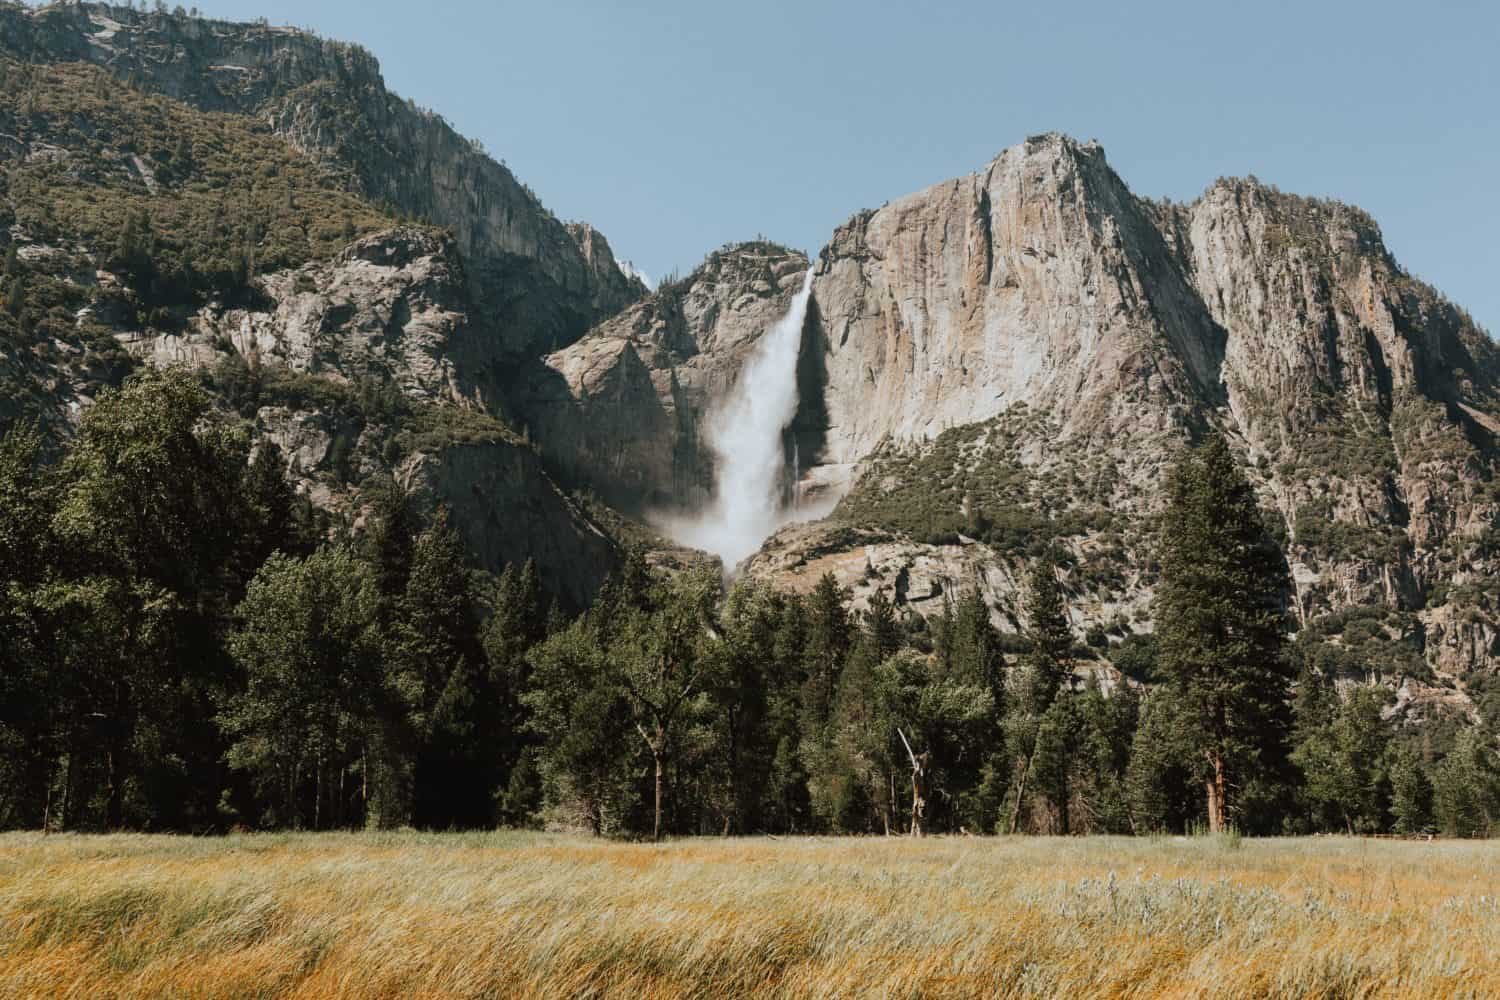 Yosemite Falls View from Cook's Meadow - one Day In Yosemite National Park